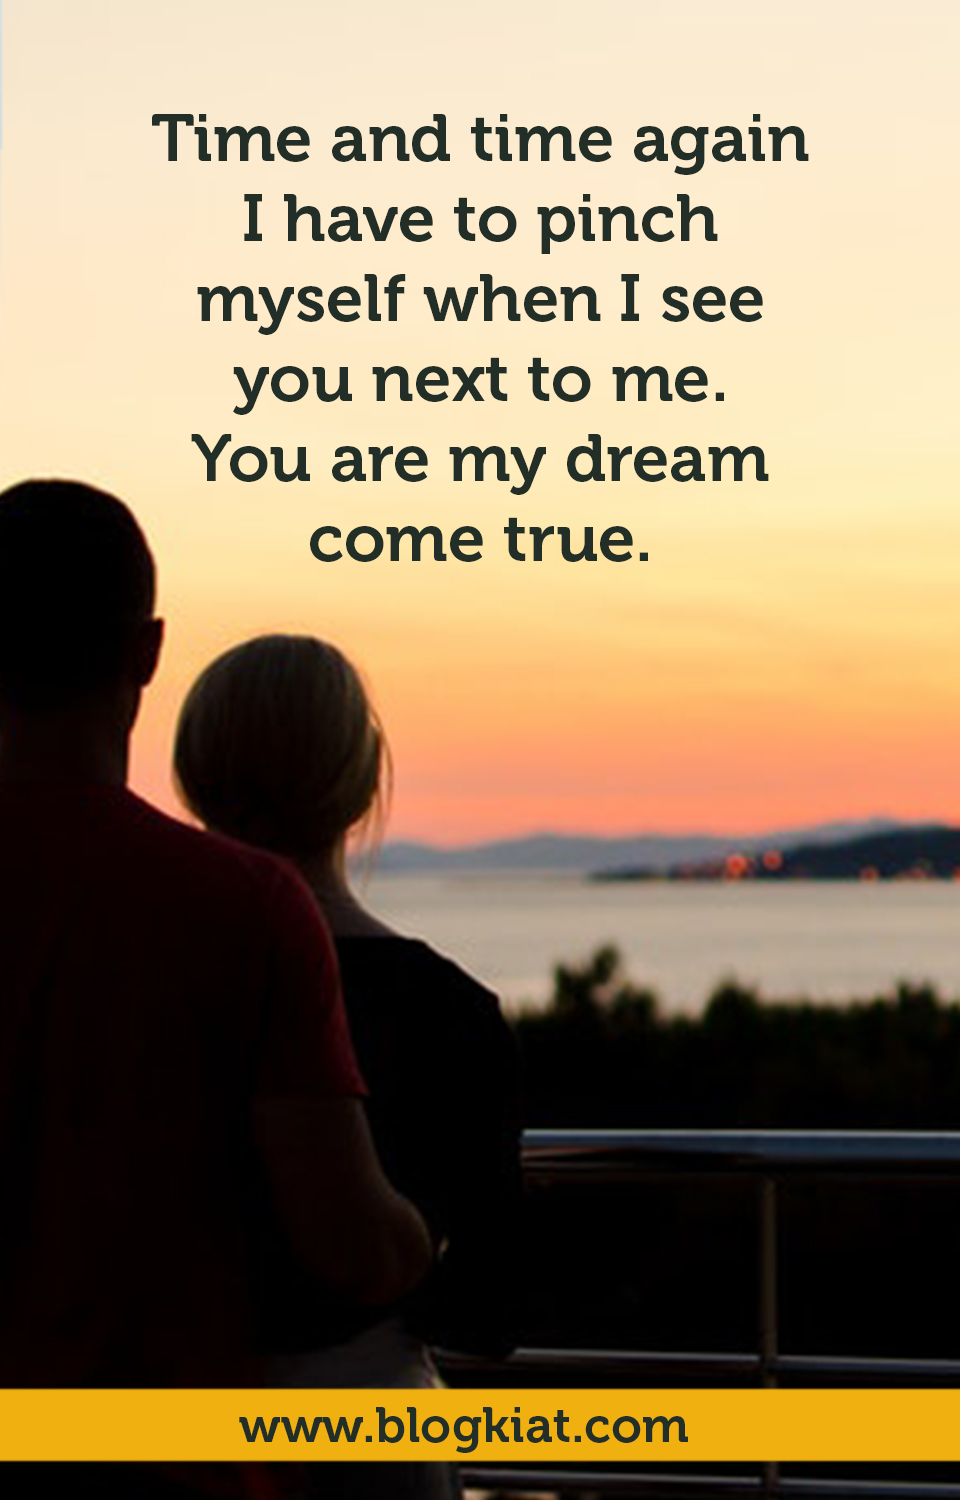 Cute Love Quotes For Her - Blogkiat com: Cute Love Quotes